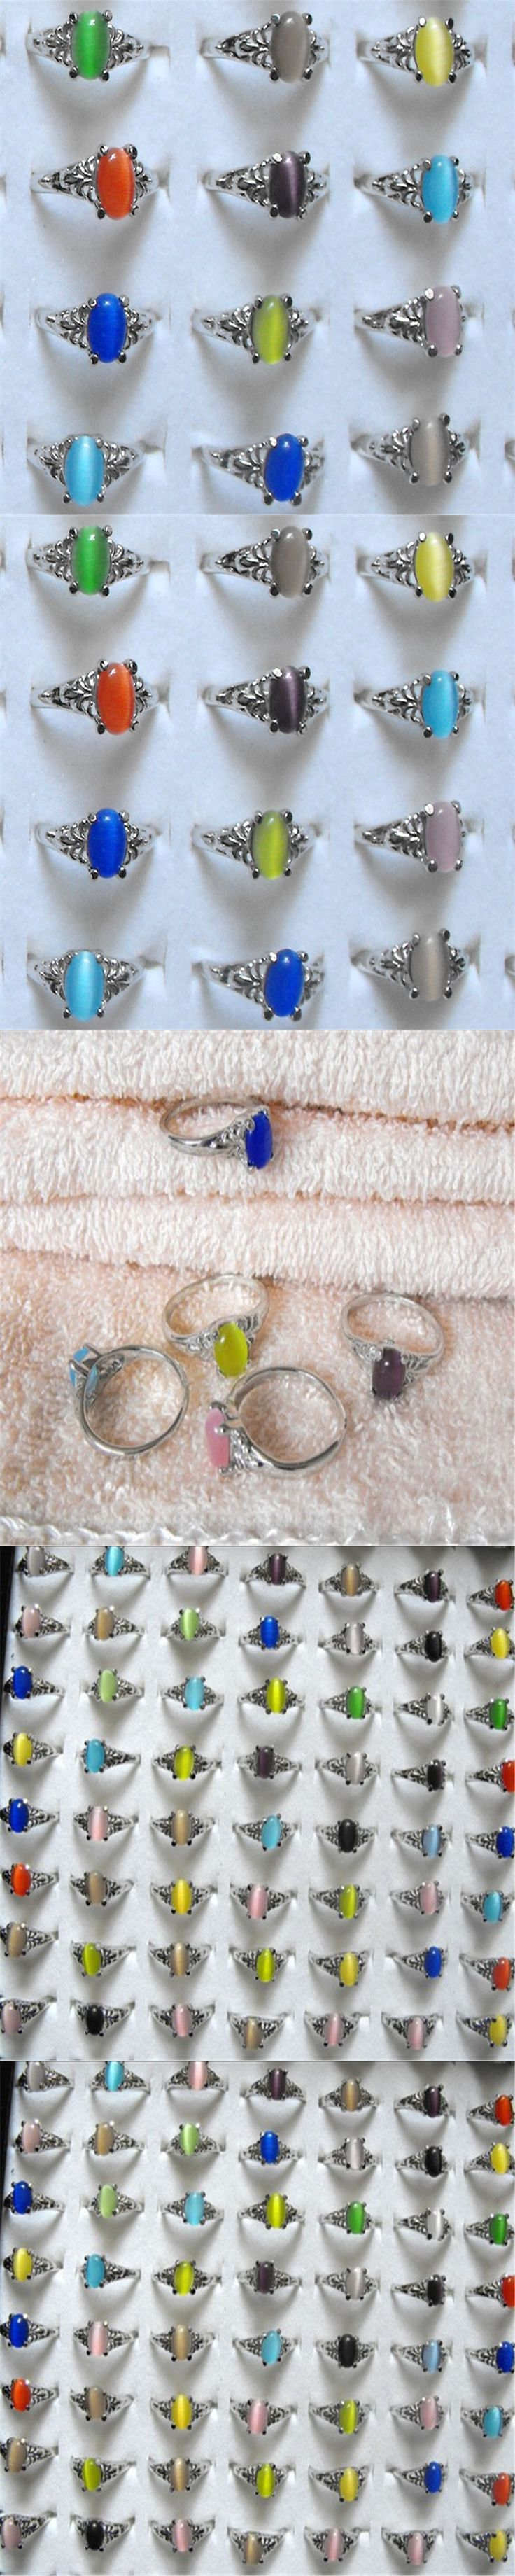 Wholesale Mix lot 15pcs Cat Eye Stone Ring Fashion Women Jewelry Charming For Party Wedding Rings Free shipping